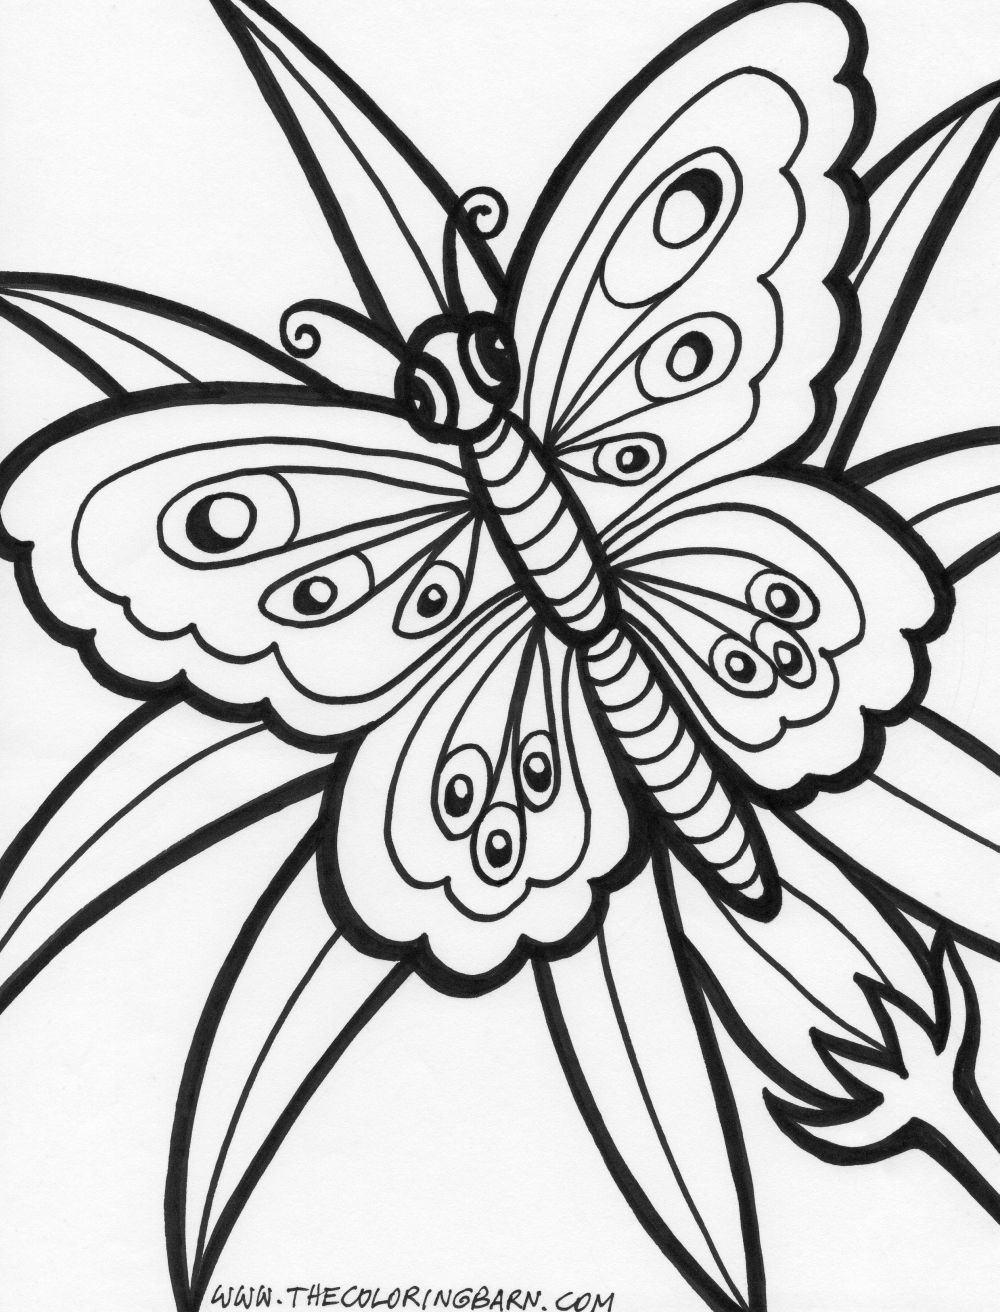 7 Images of Large Printable Flower Coloring Pages